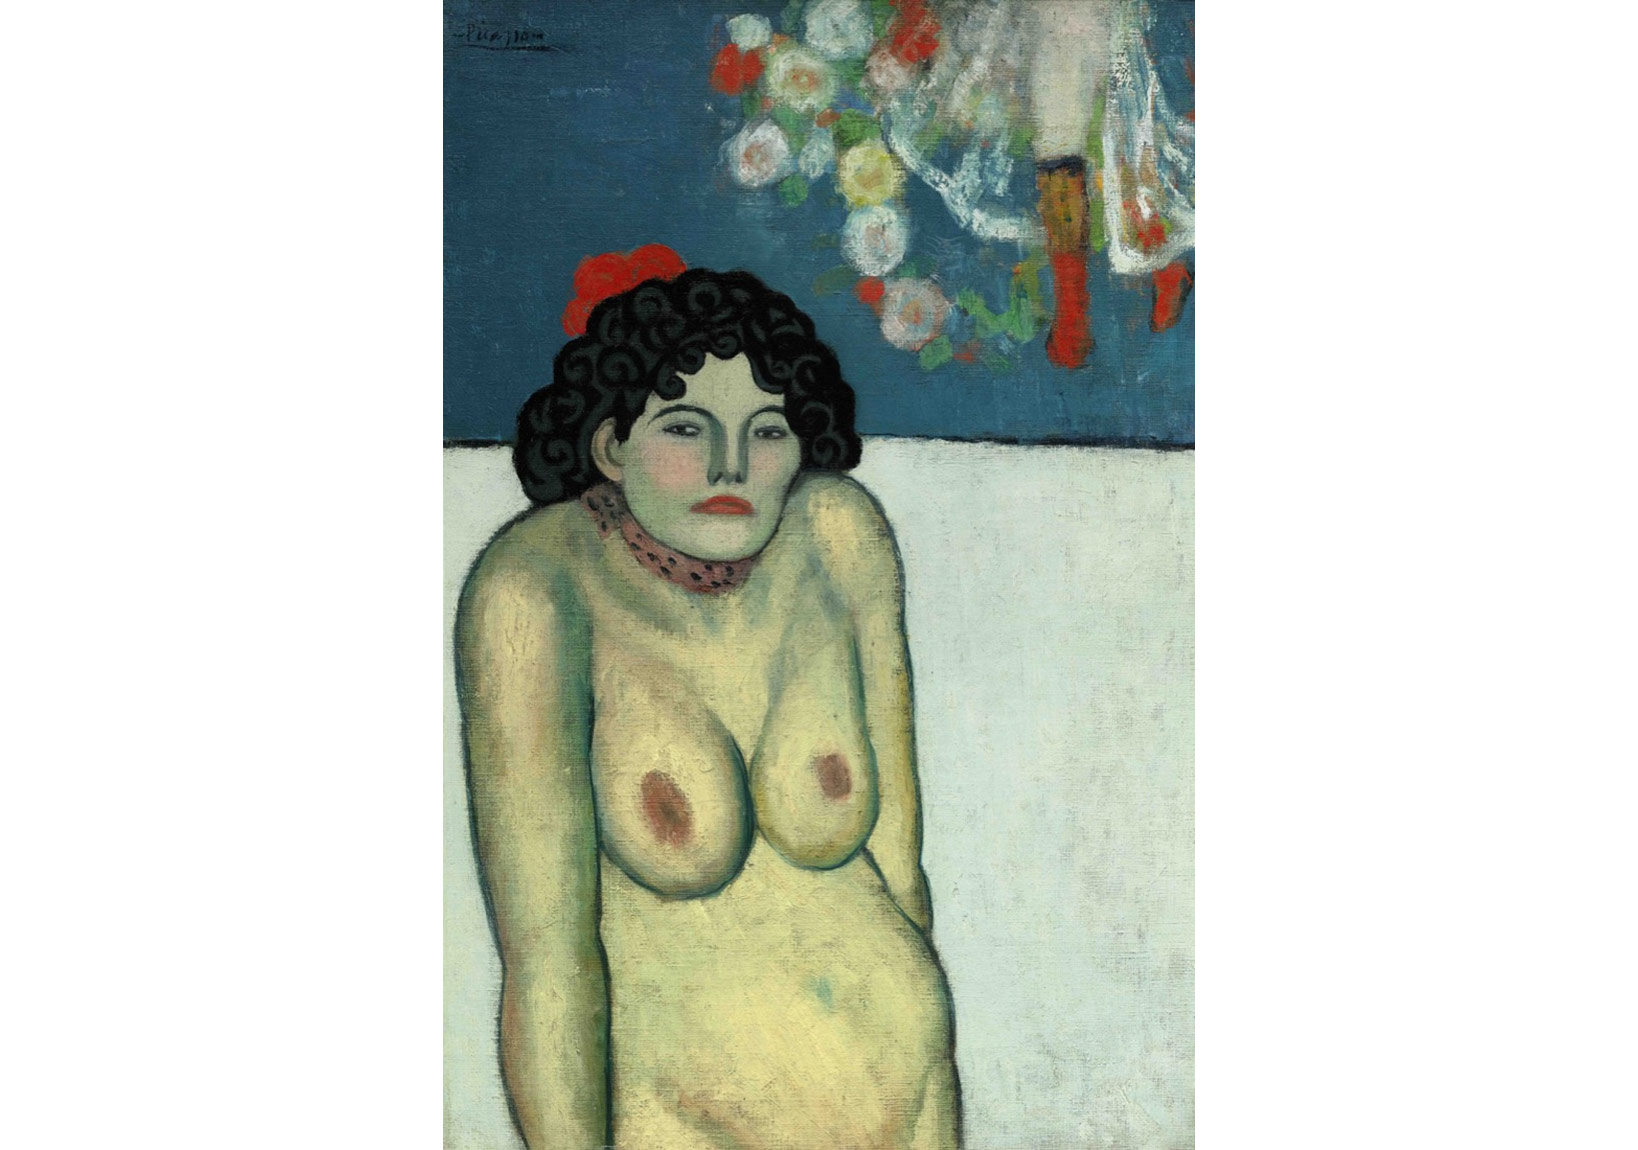 Pablo Picasso, La Gommeuse, 1901. Price Realized: $67,450,000. Courtesy Sotheby's.